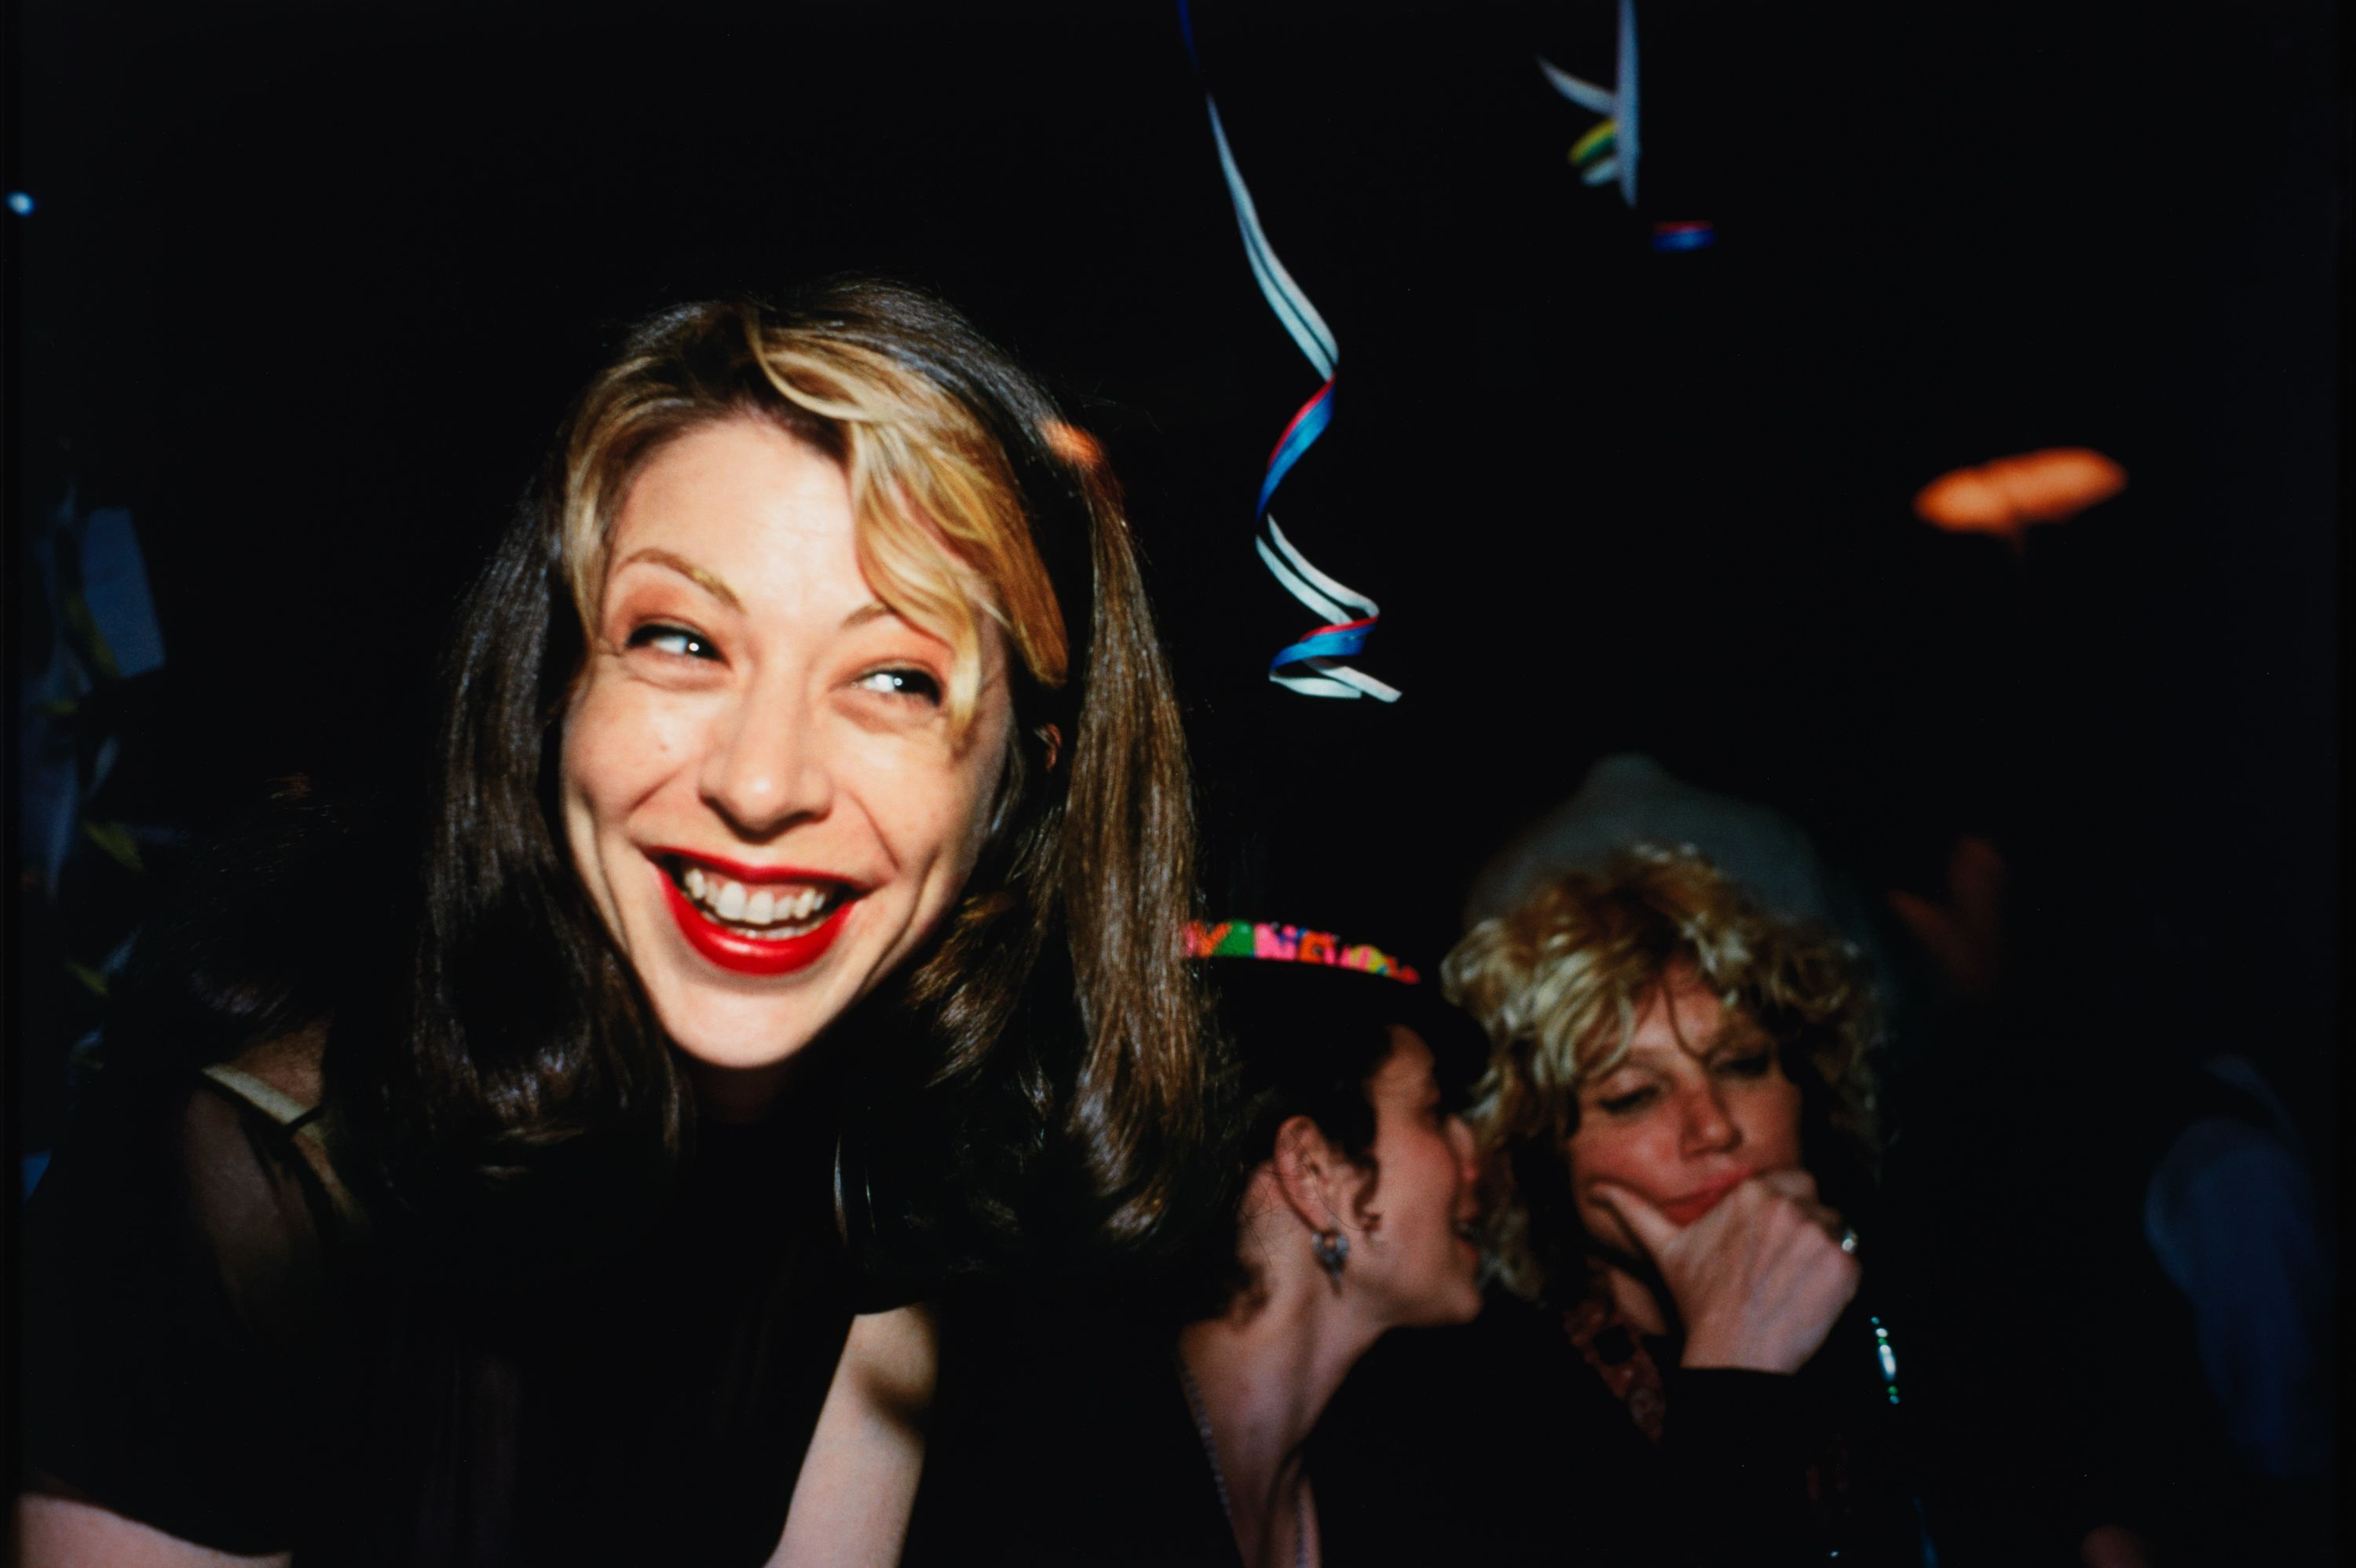 An image of Kathleen with a wide grin, laughing in a bar